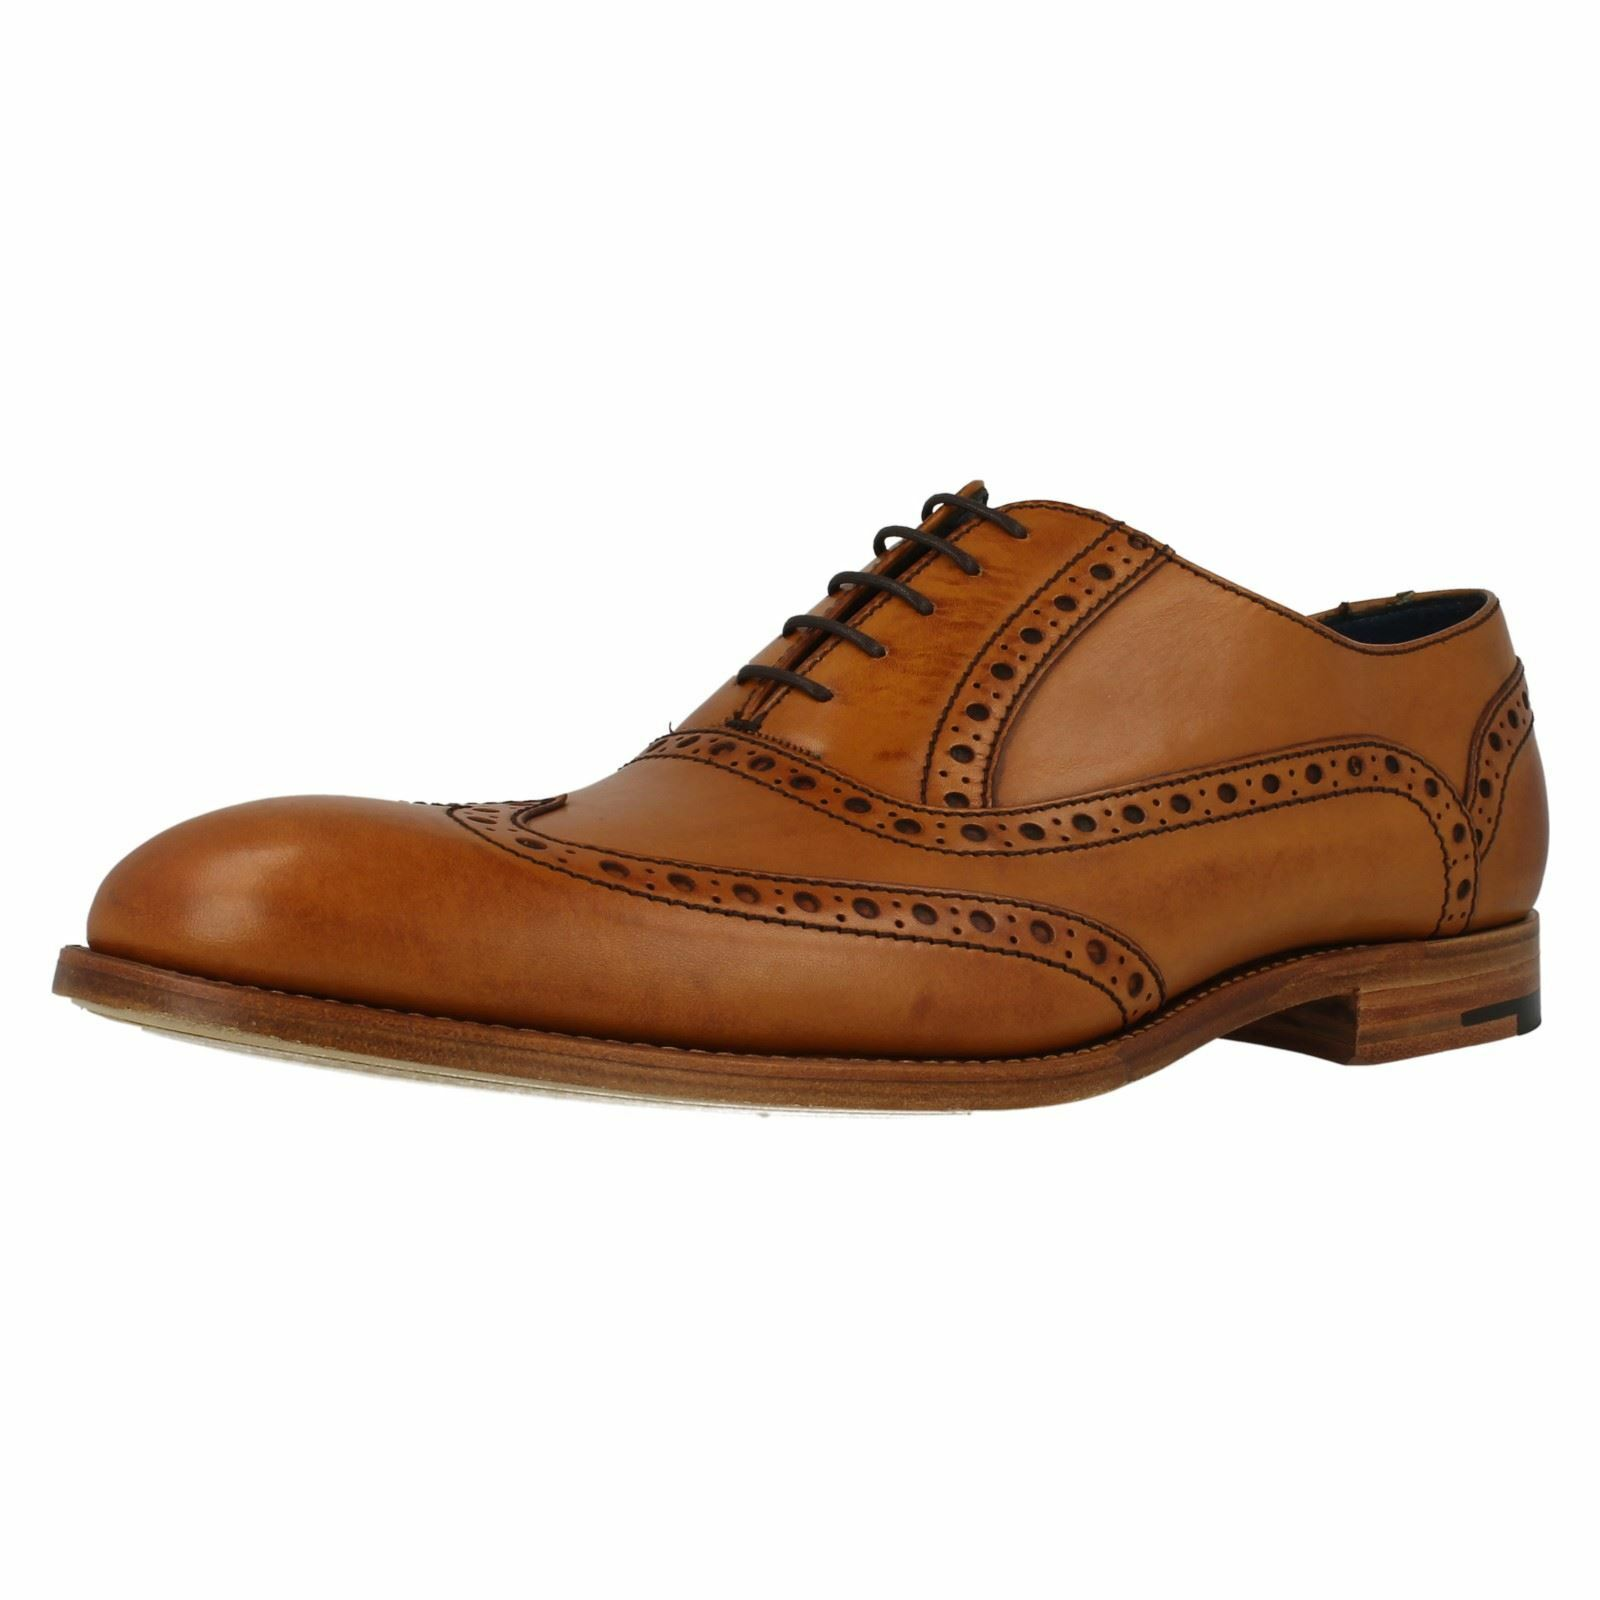 Barker 'Grant' Cedar Calf Leather Lace Up Brogue Shoes